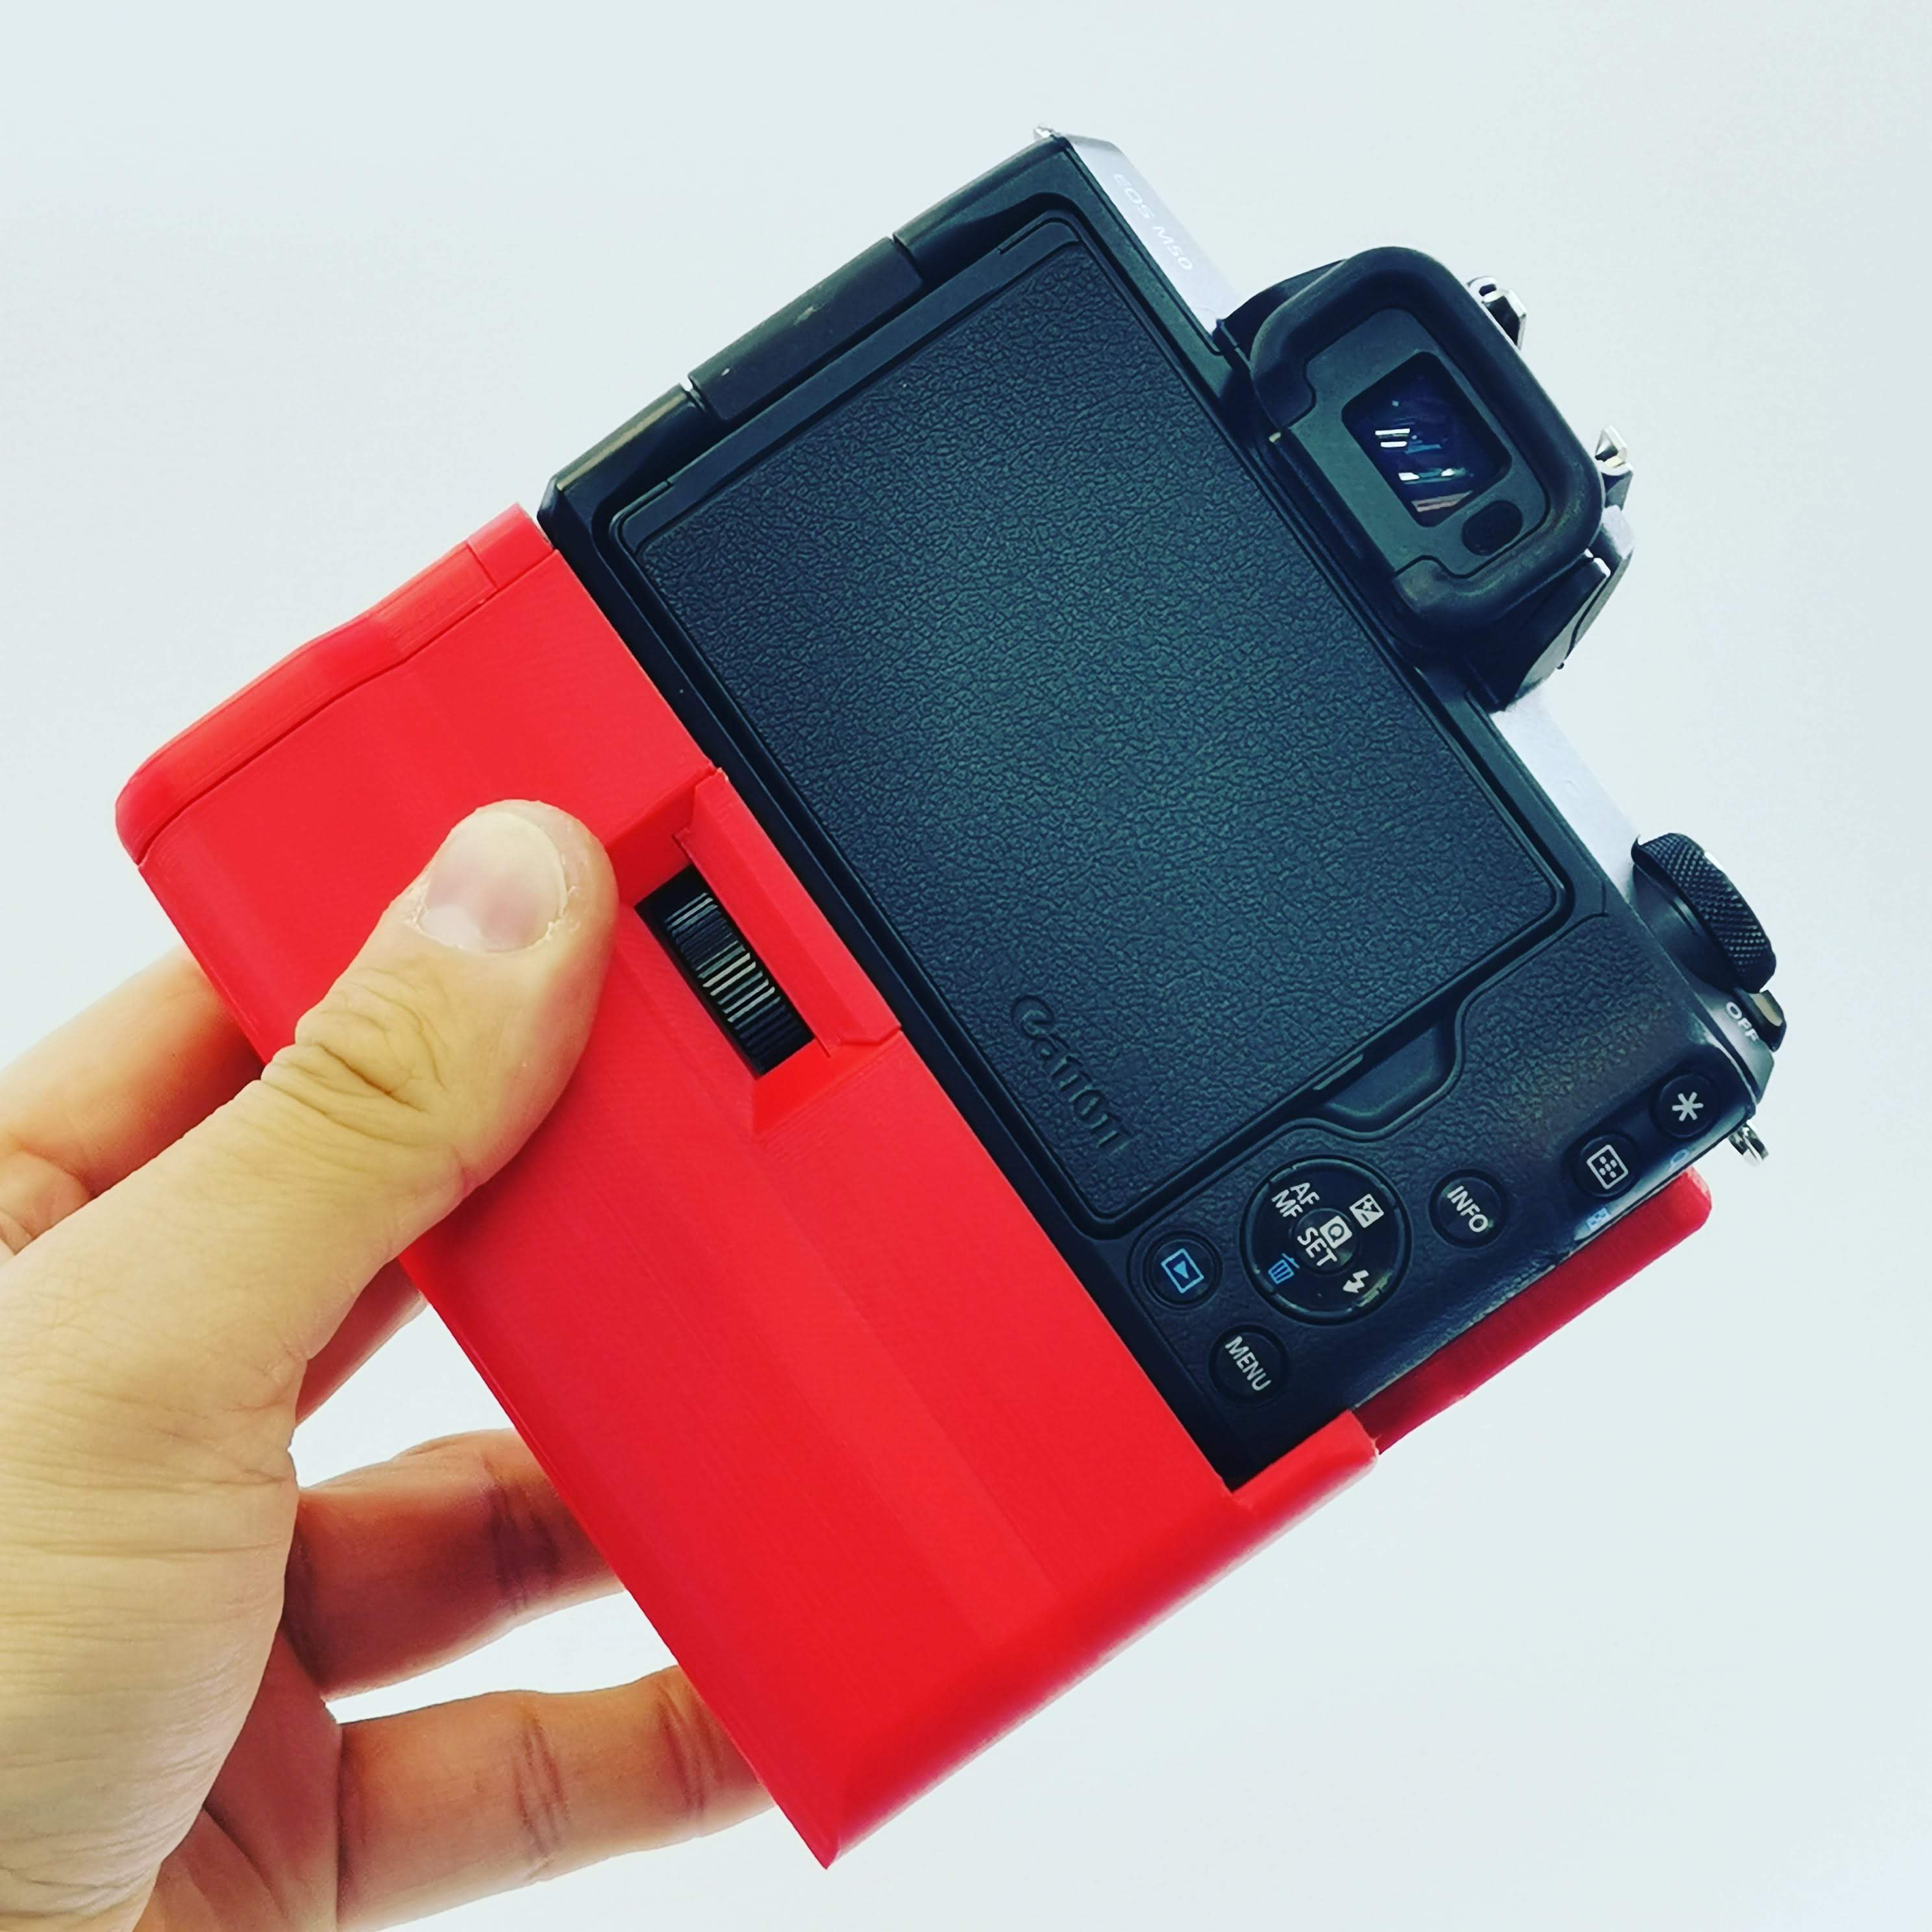 We're still thinking about releasing a line of colored grips for EOS cameras